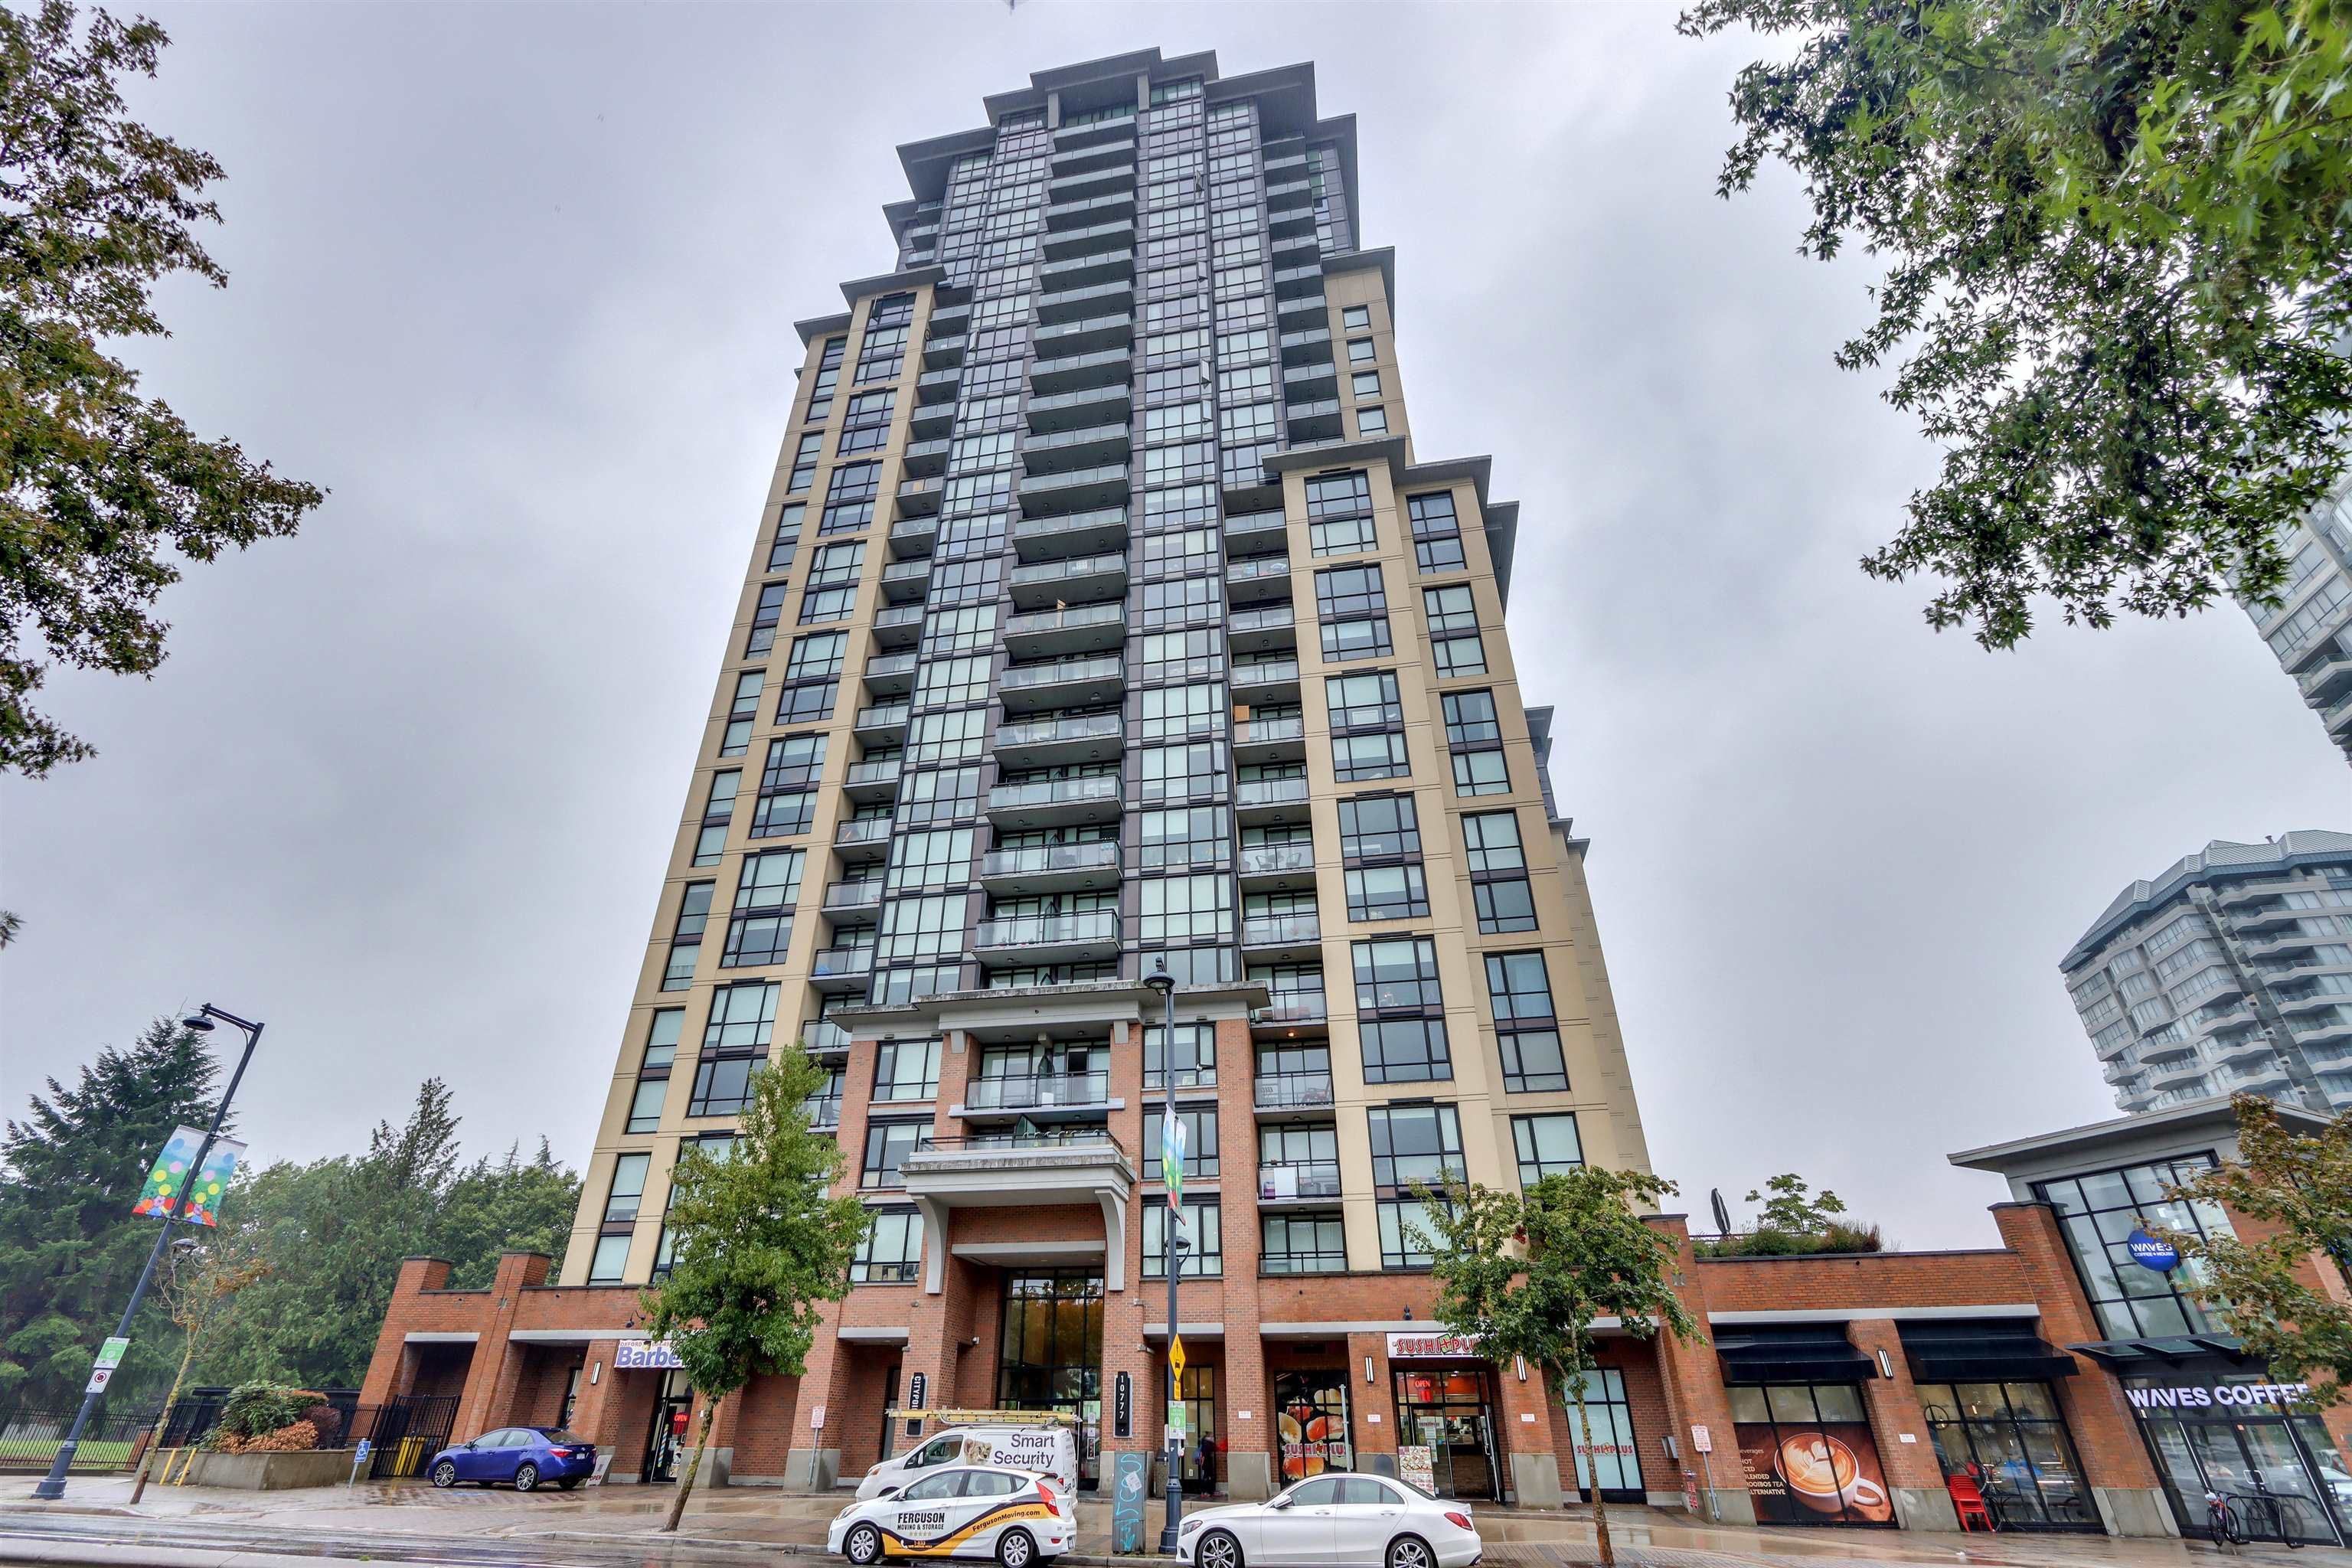 1210 10777 UNIVERSITY DRIVE - Whalley Apartment/Condo for sale, 1 Bedroom (R2620056) - #1